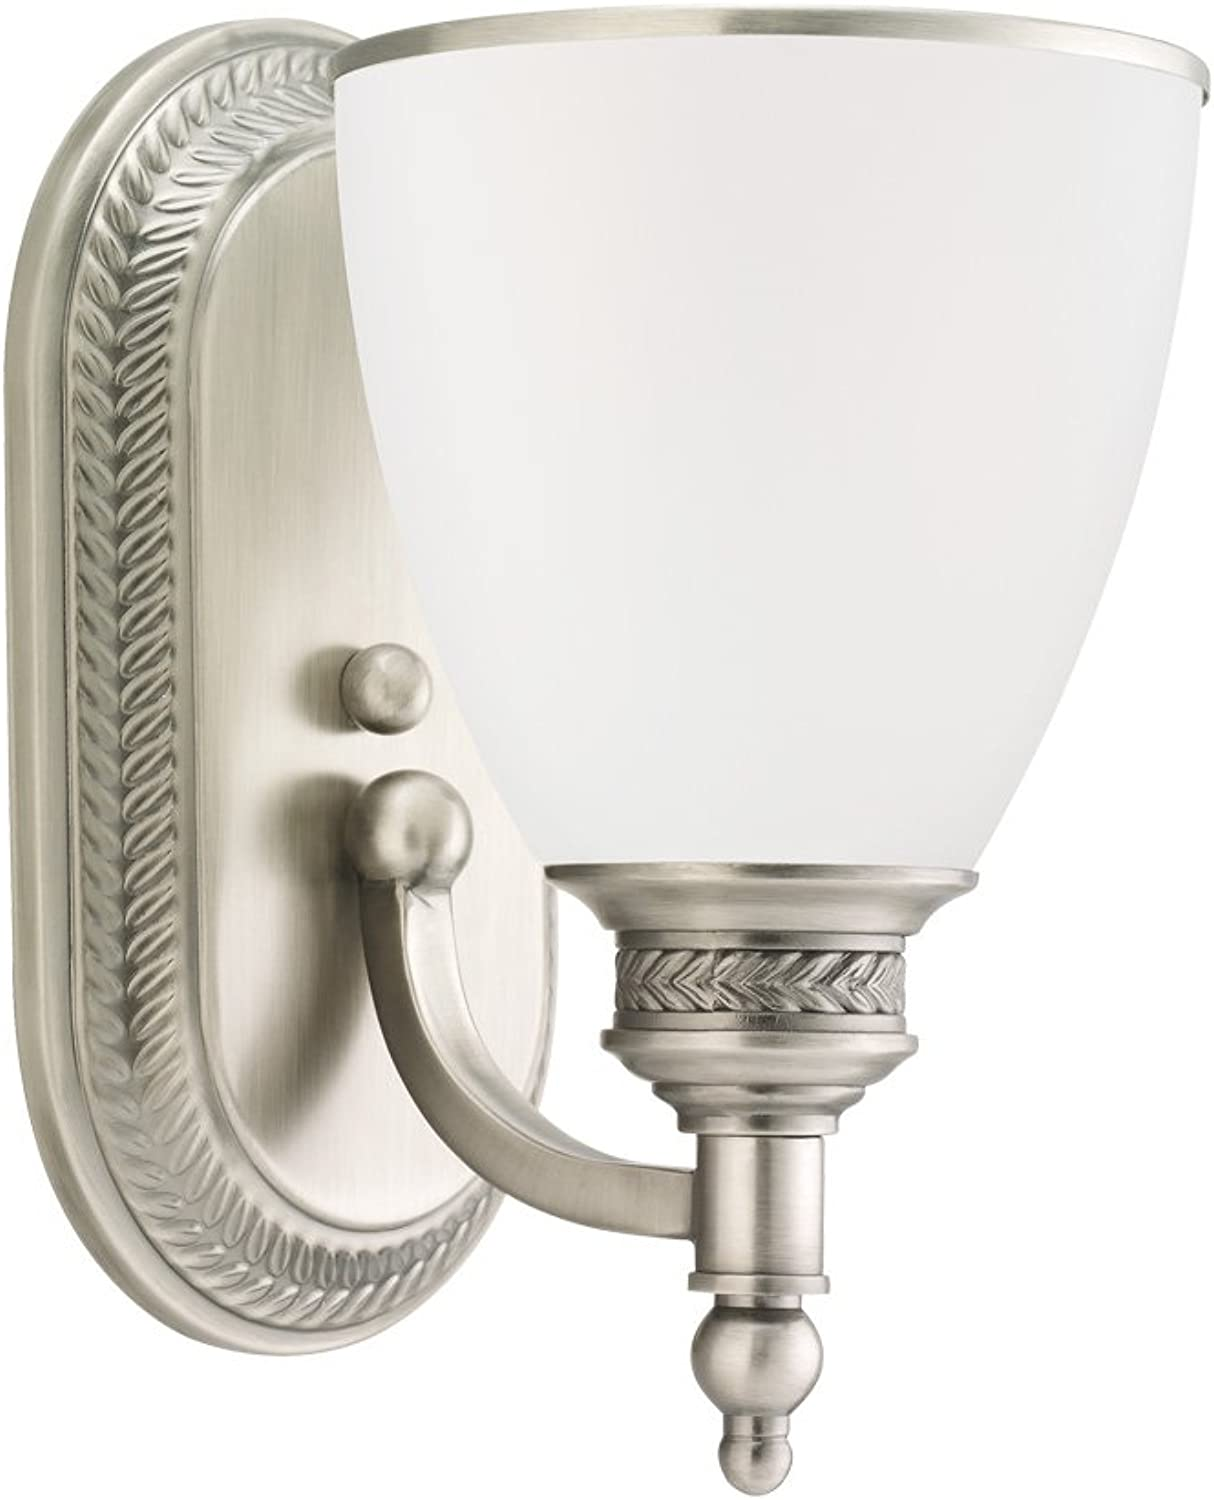 Sea Gull Lighting 41350-965 Laurel Leaf One-Light Bath or Wall Light Fixture with Etched Ripple Glass Shade, Antique Brushed Nickel Finish